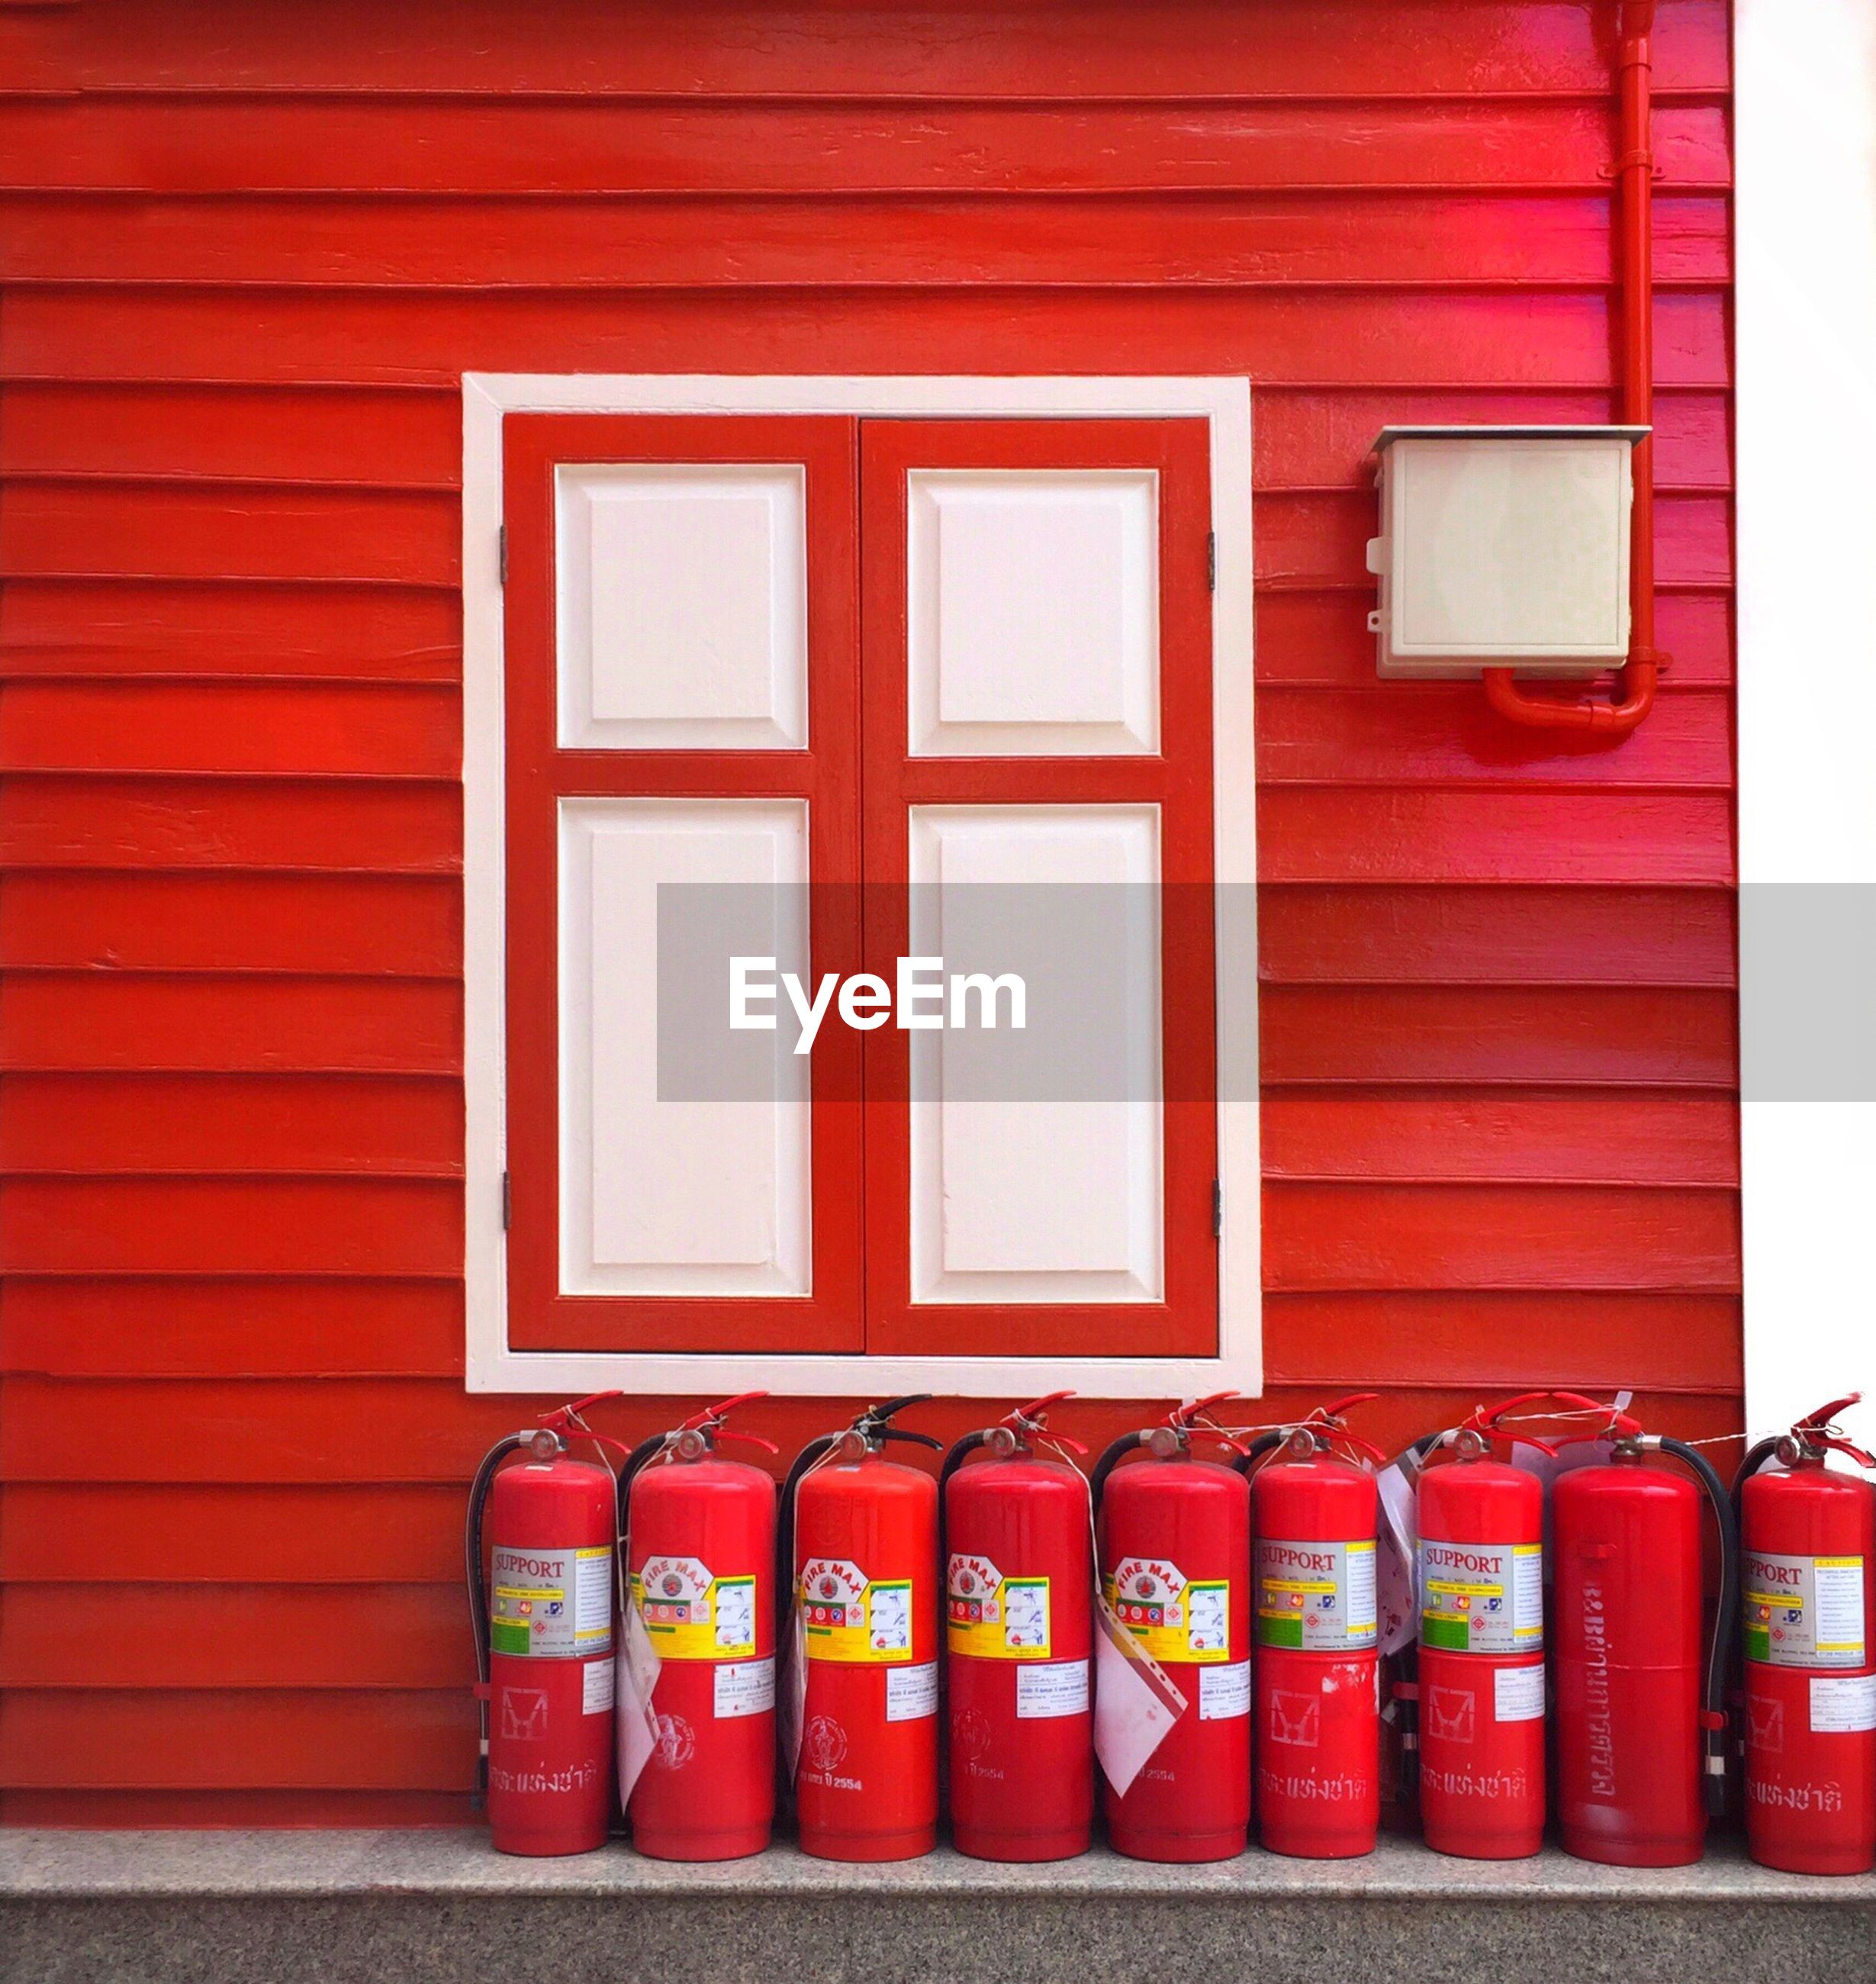 Fire extinguishers on retaining wall by